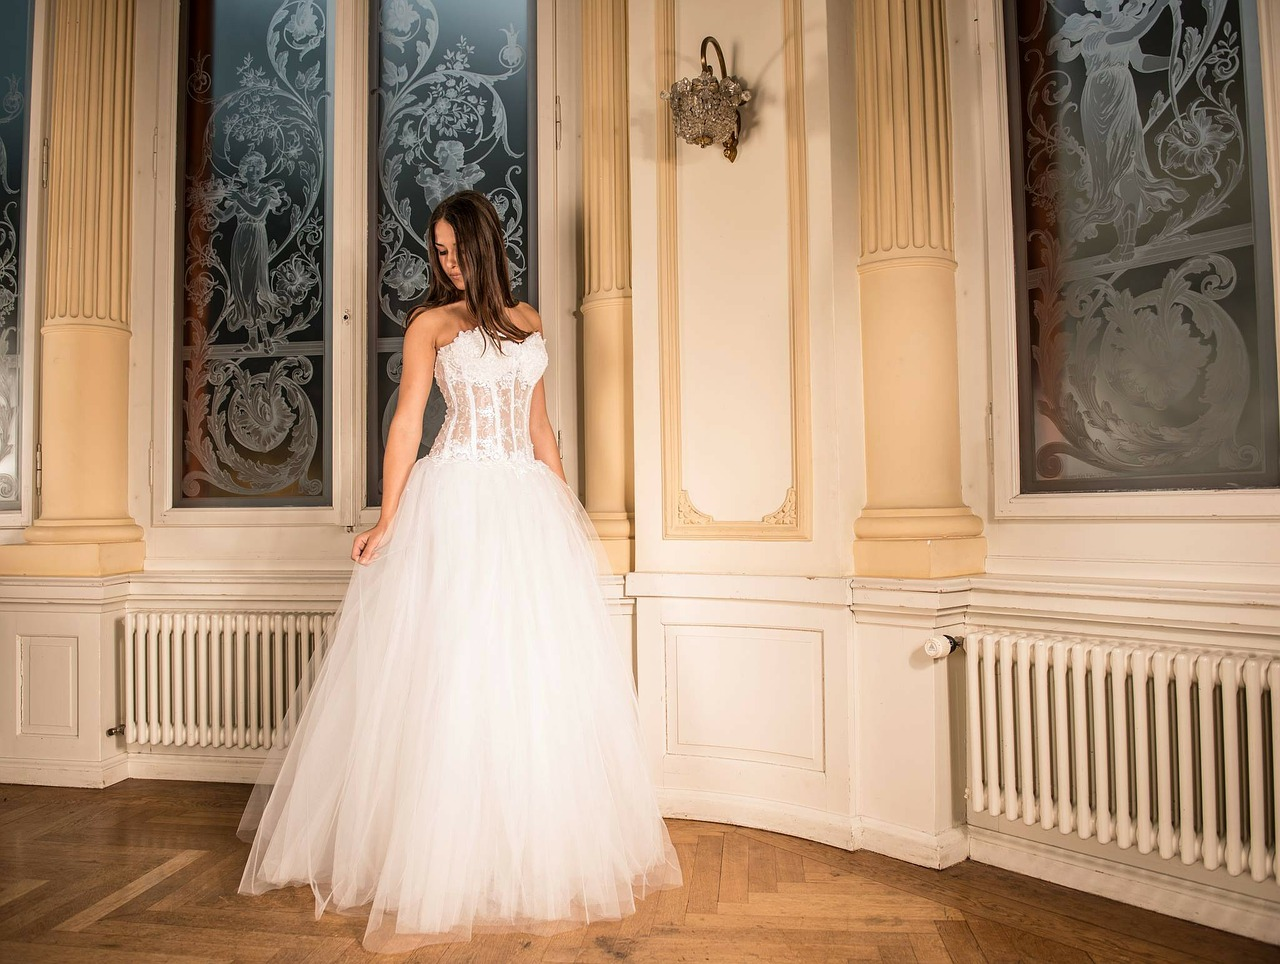 How To Go About Buying a Wedding Outfit